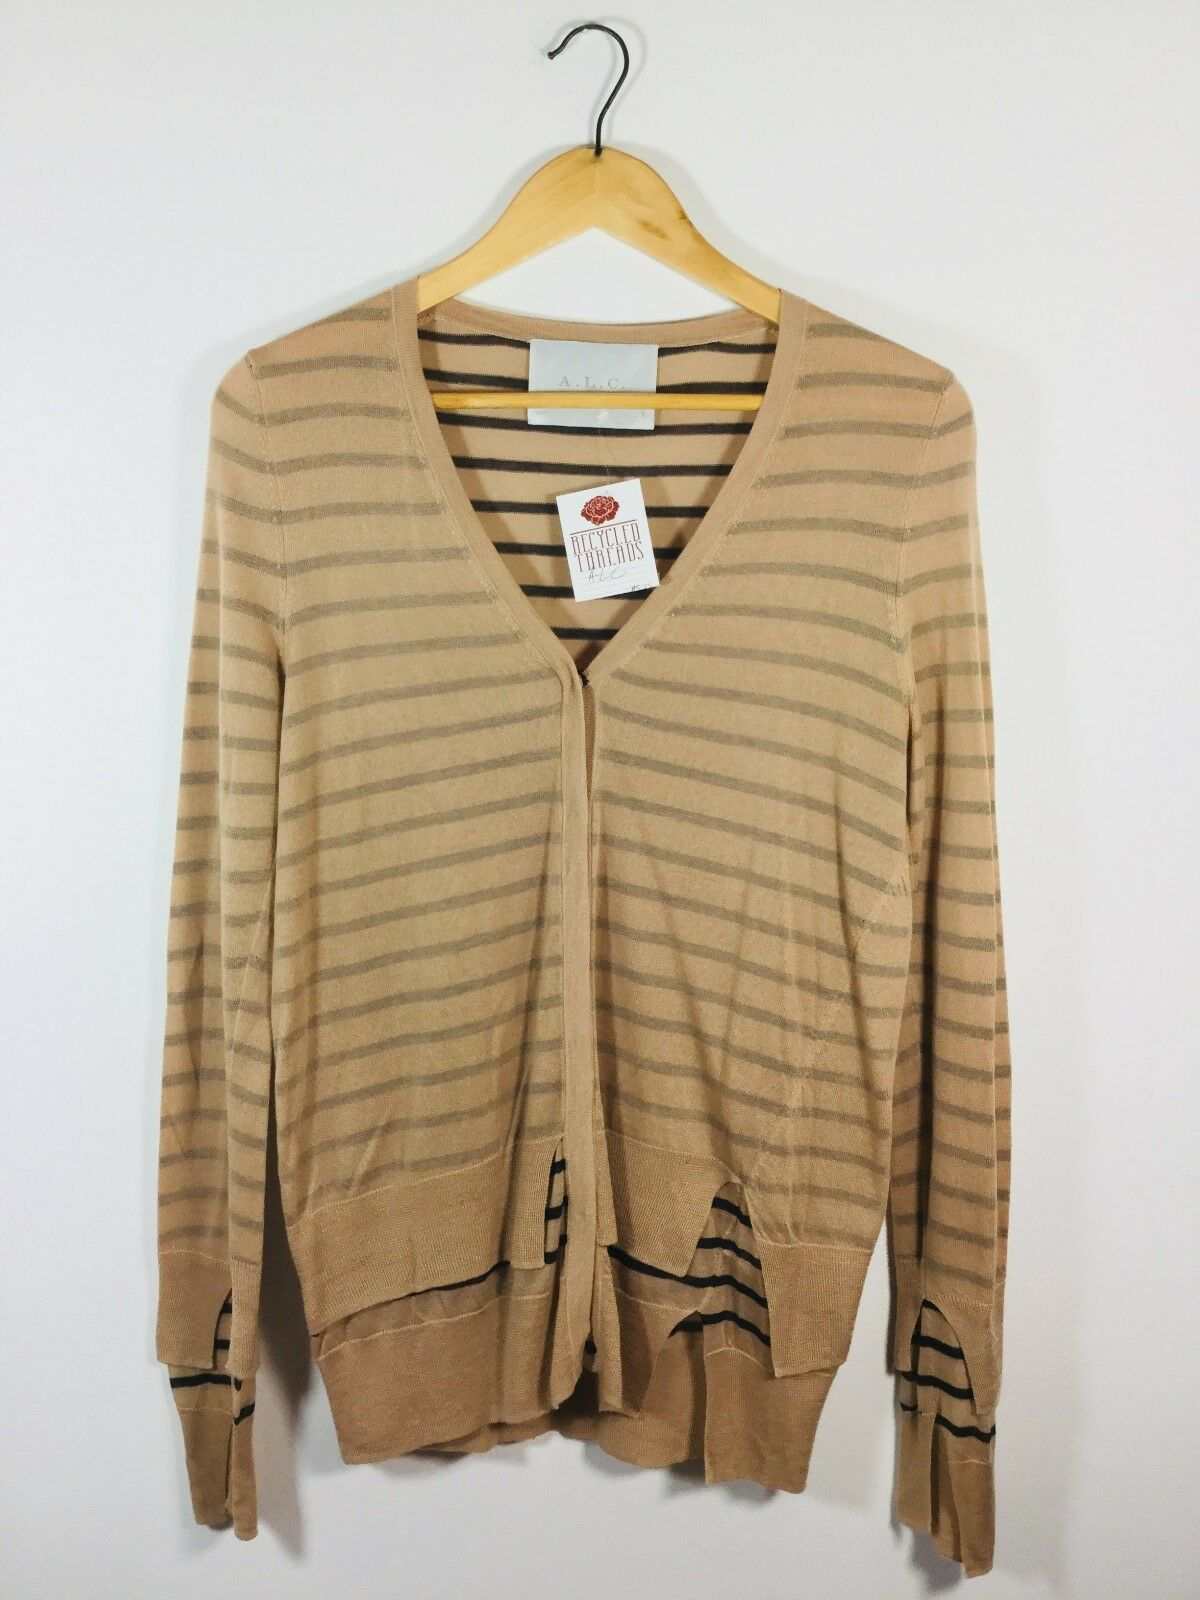 A.L.C. Tan Striped Size Small Long Sleeve Cashmere Cardigan Sweater